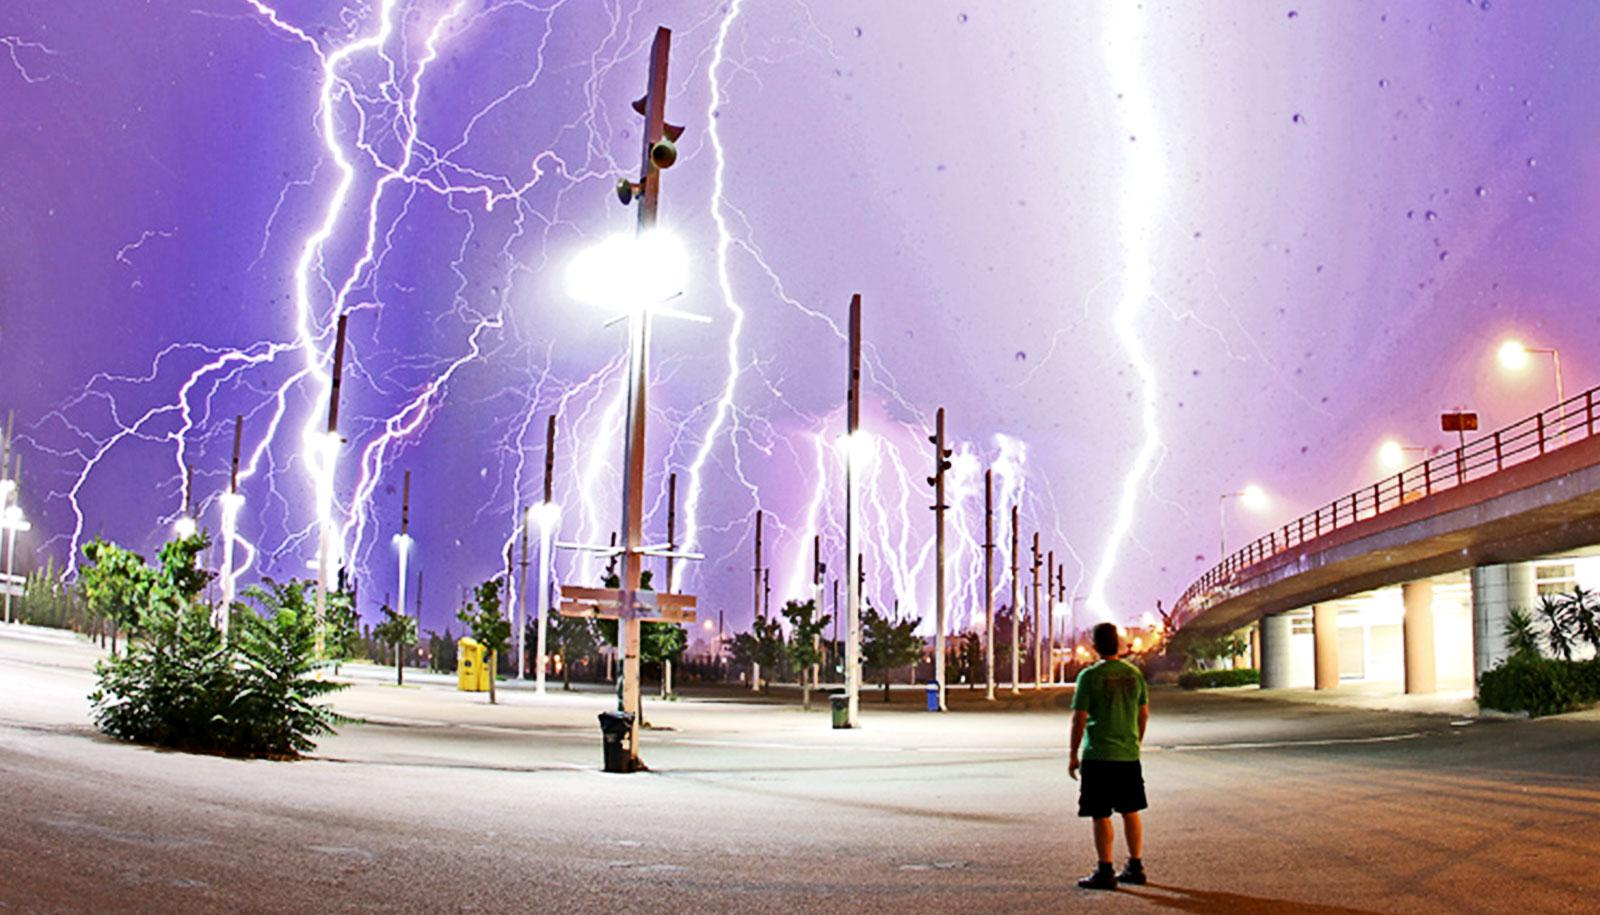 A man looks up from a parking lot to see a purple sky filled with white lightning